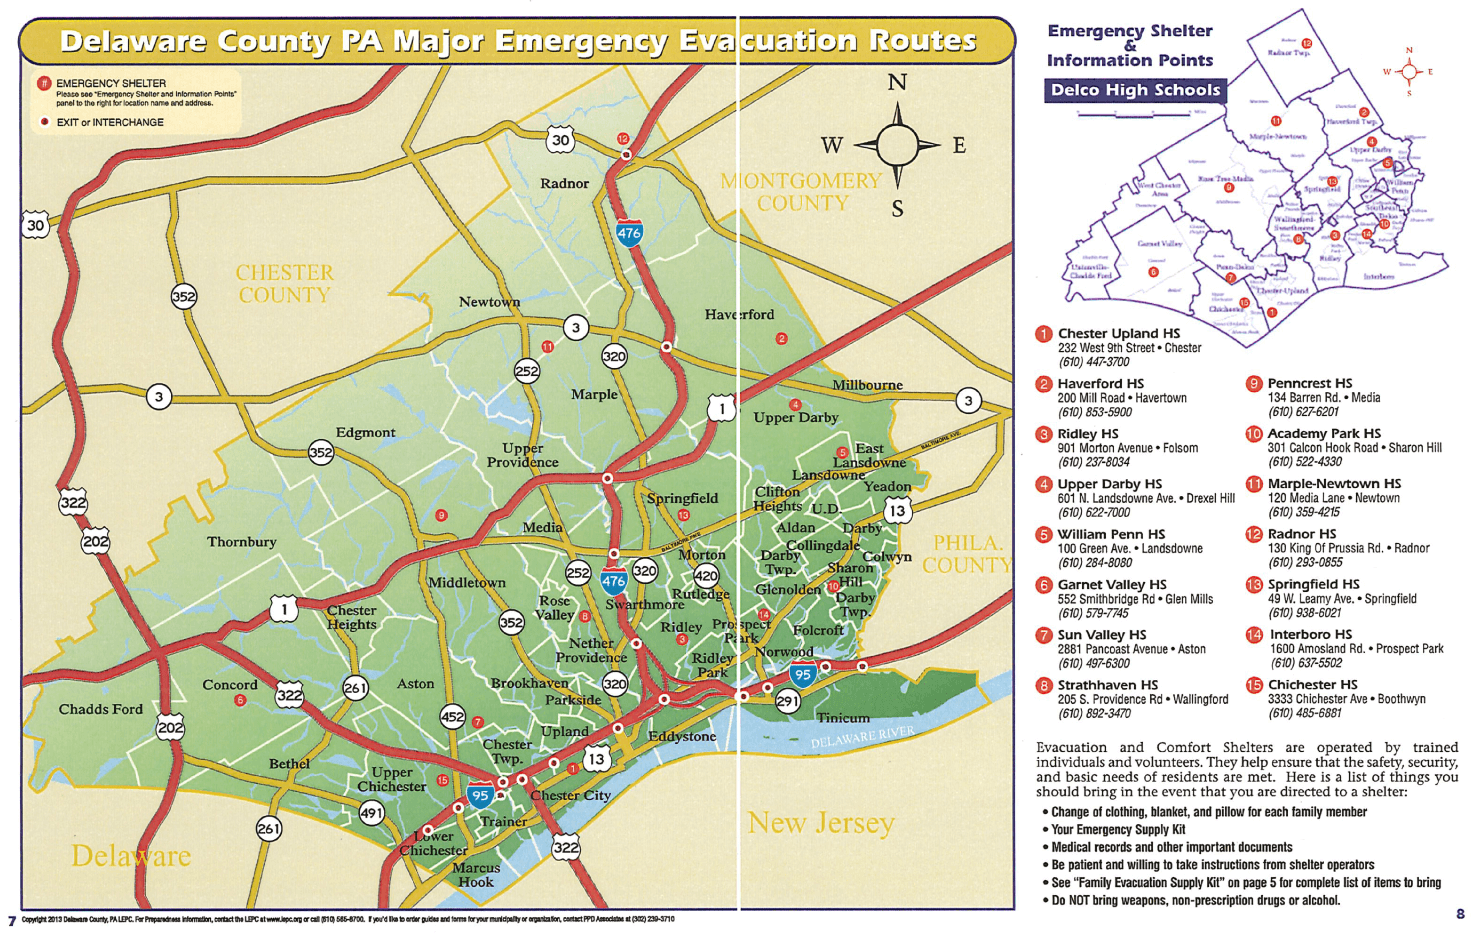 Delaware County Major Emergency Evacuation Routes